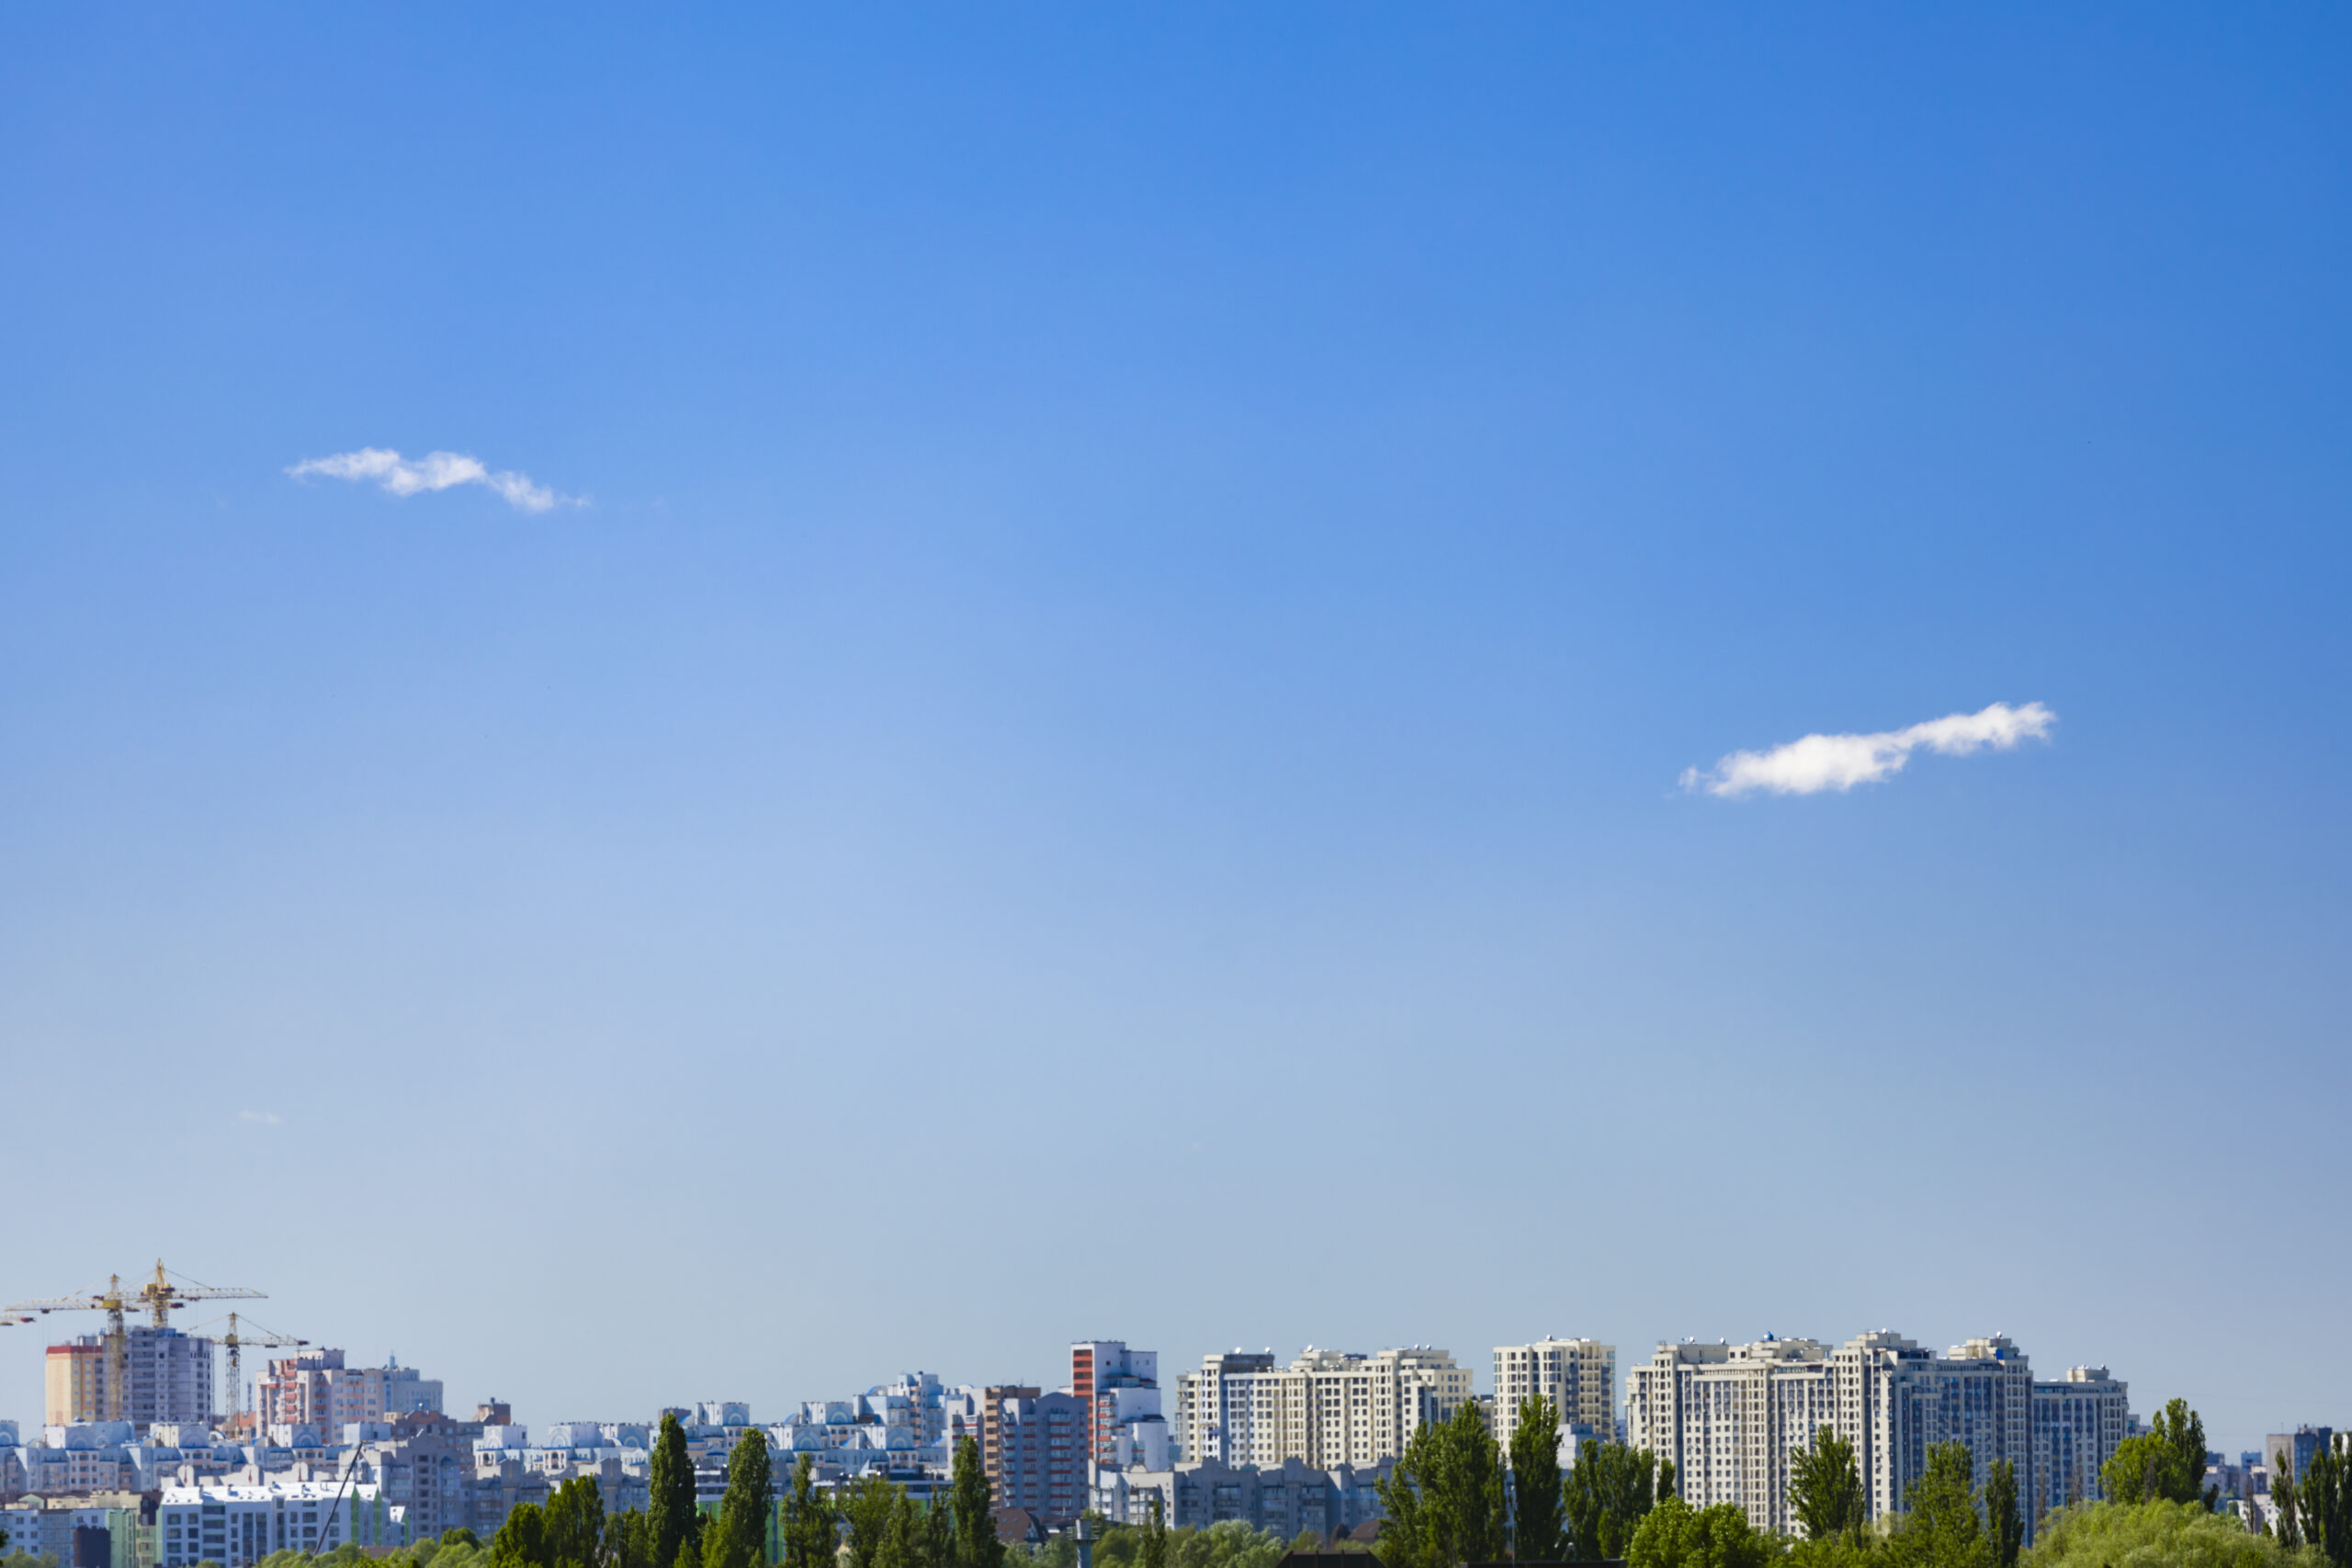 On the International Day of Clean Air for blue skies, the World Heart Federation calls for global action to mitigate the negative impacts of air pollution on people's health